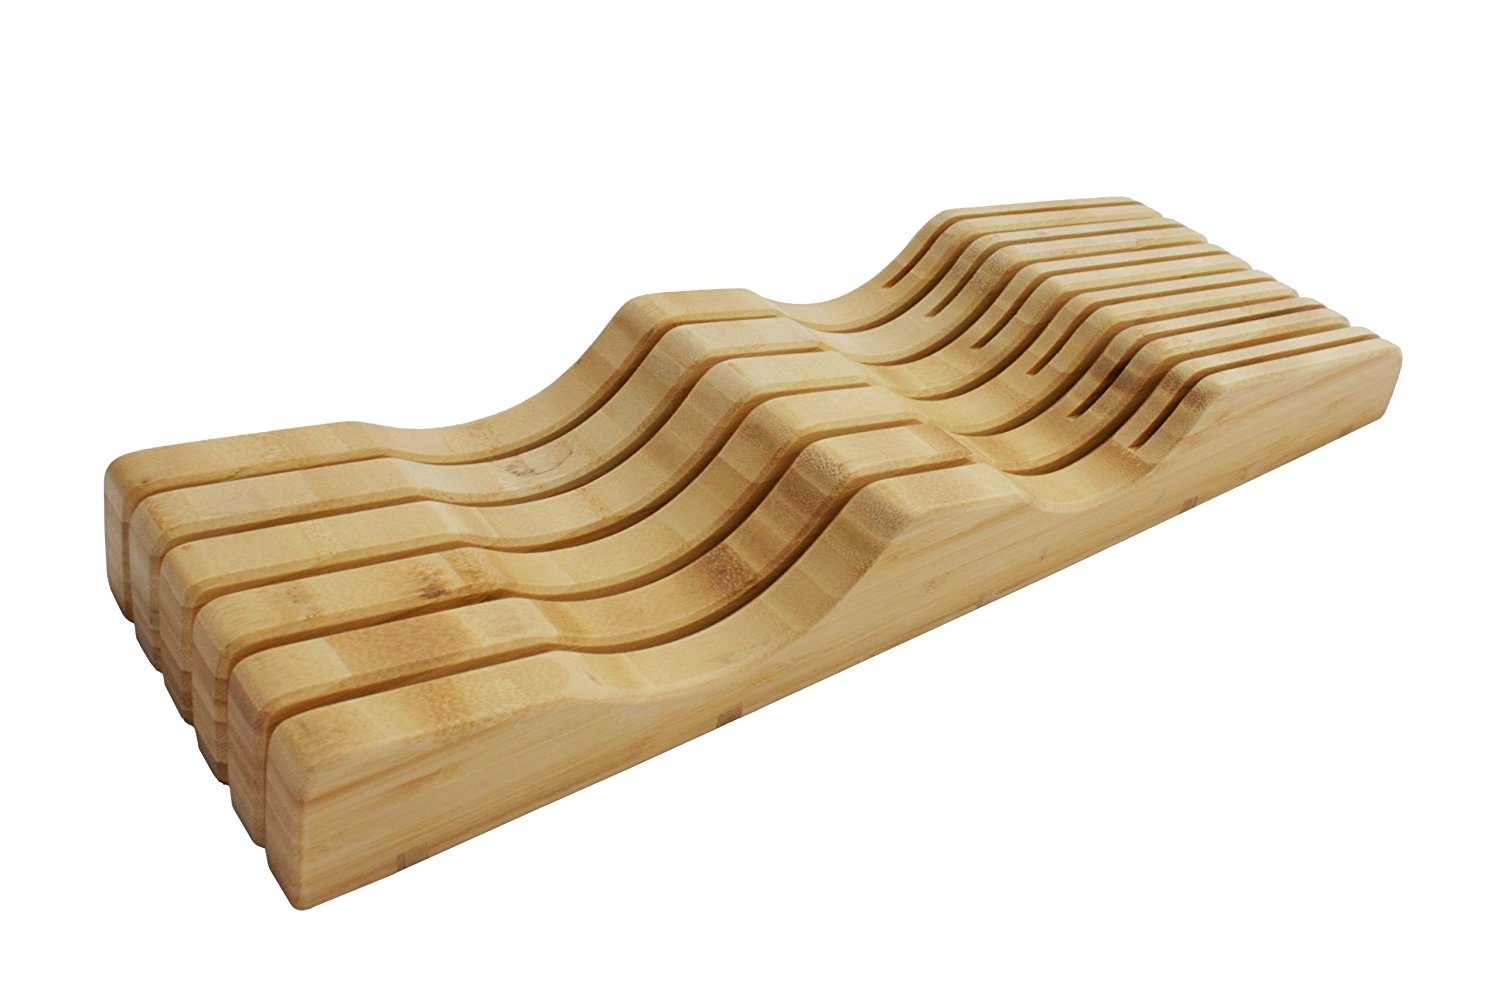 Shenzhen Knives In-Drawer Bamboo Knife Block